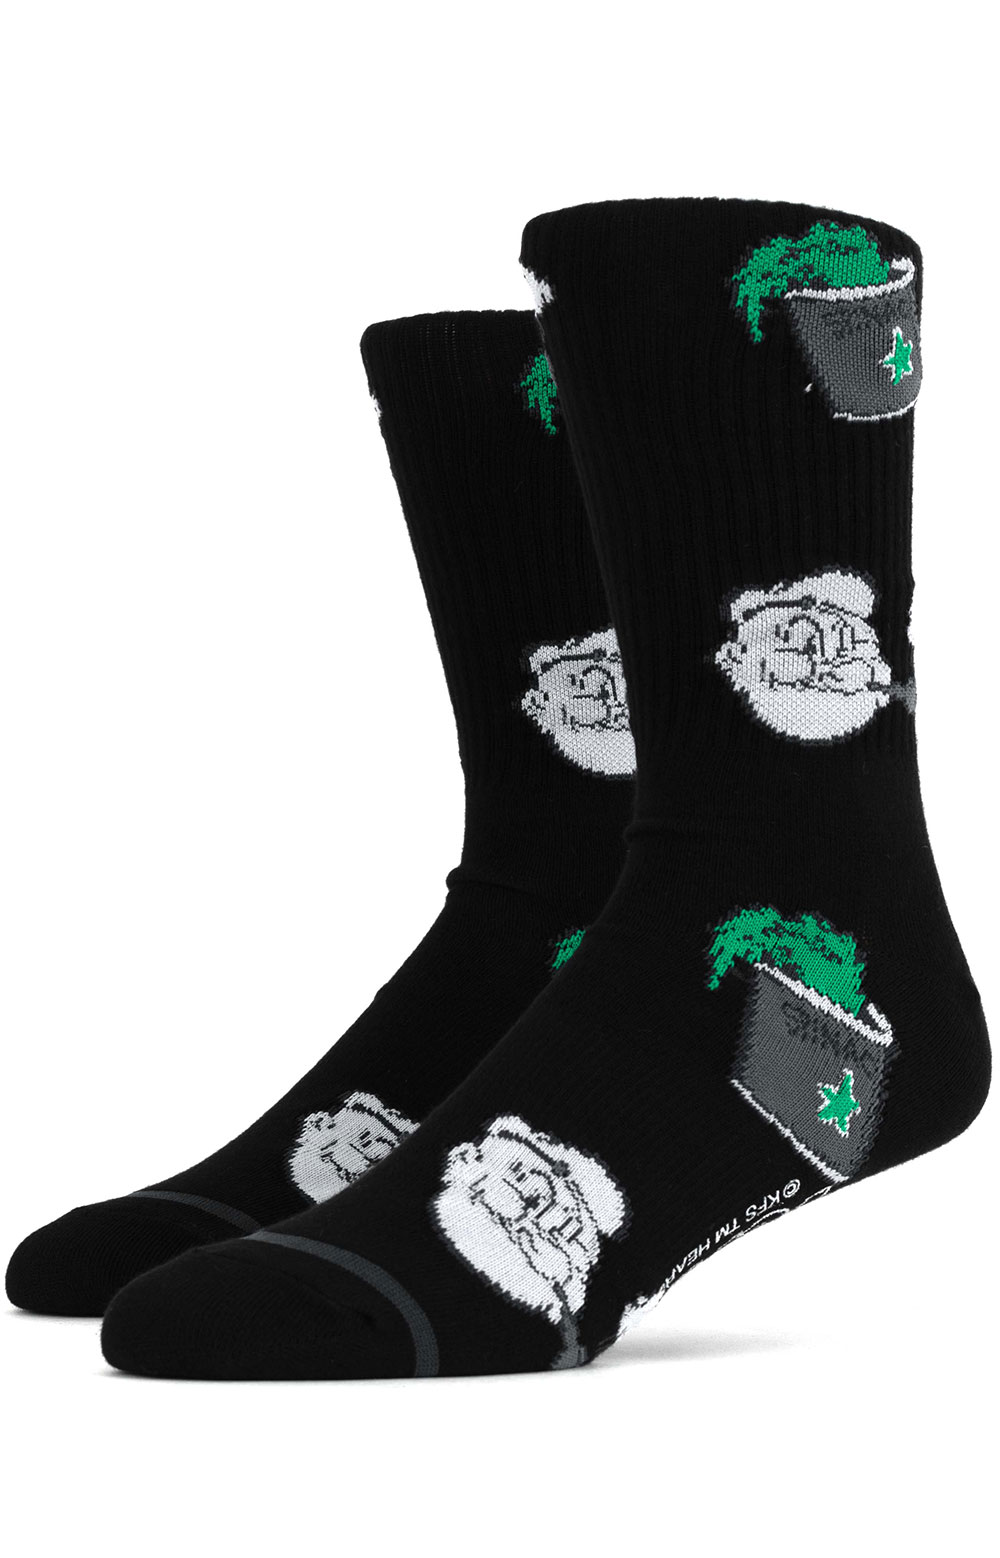 Spinach Sock - Black